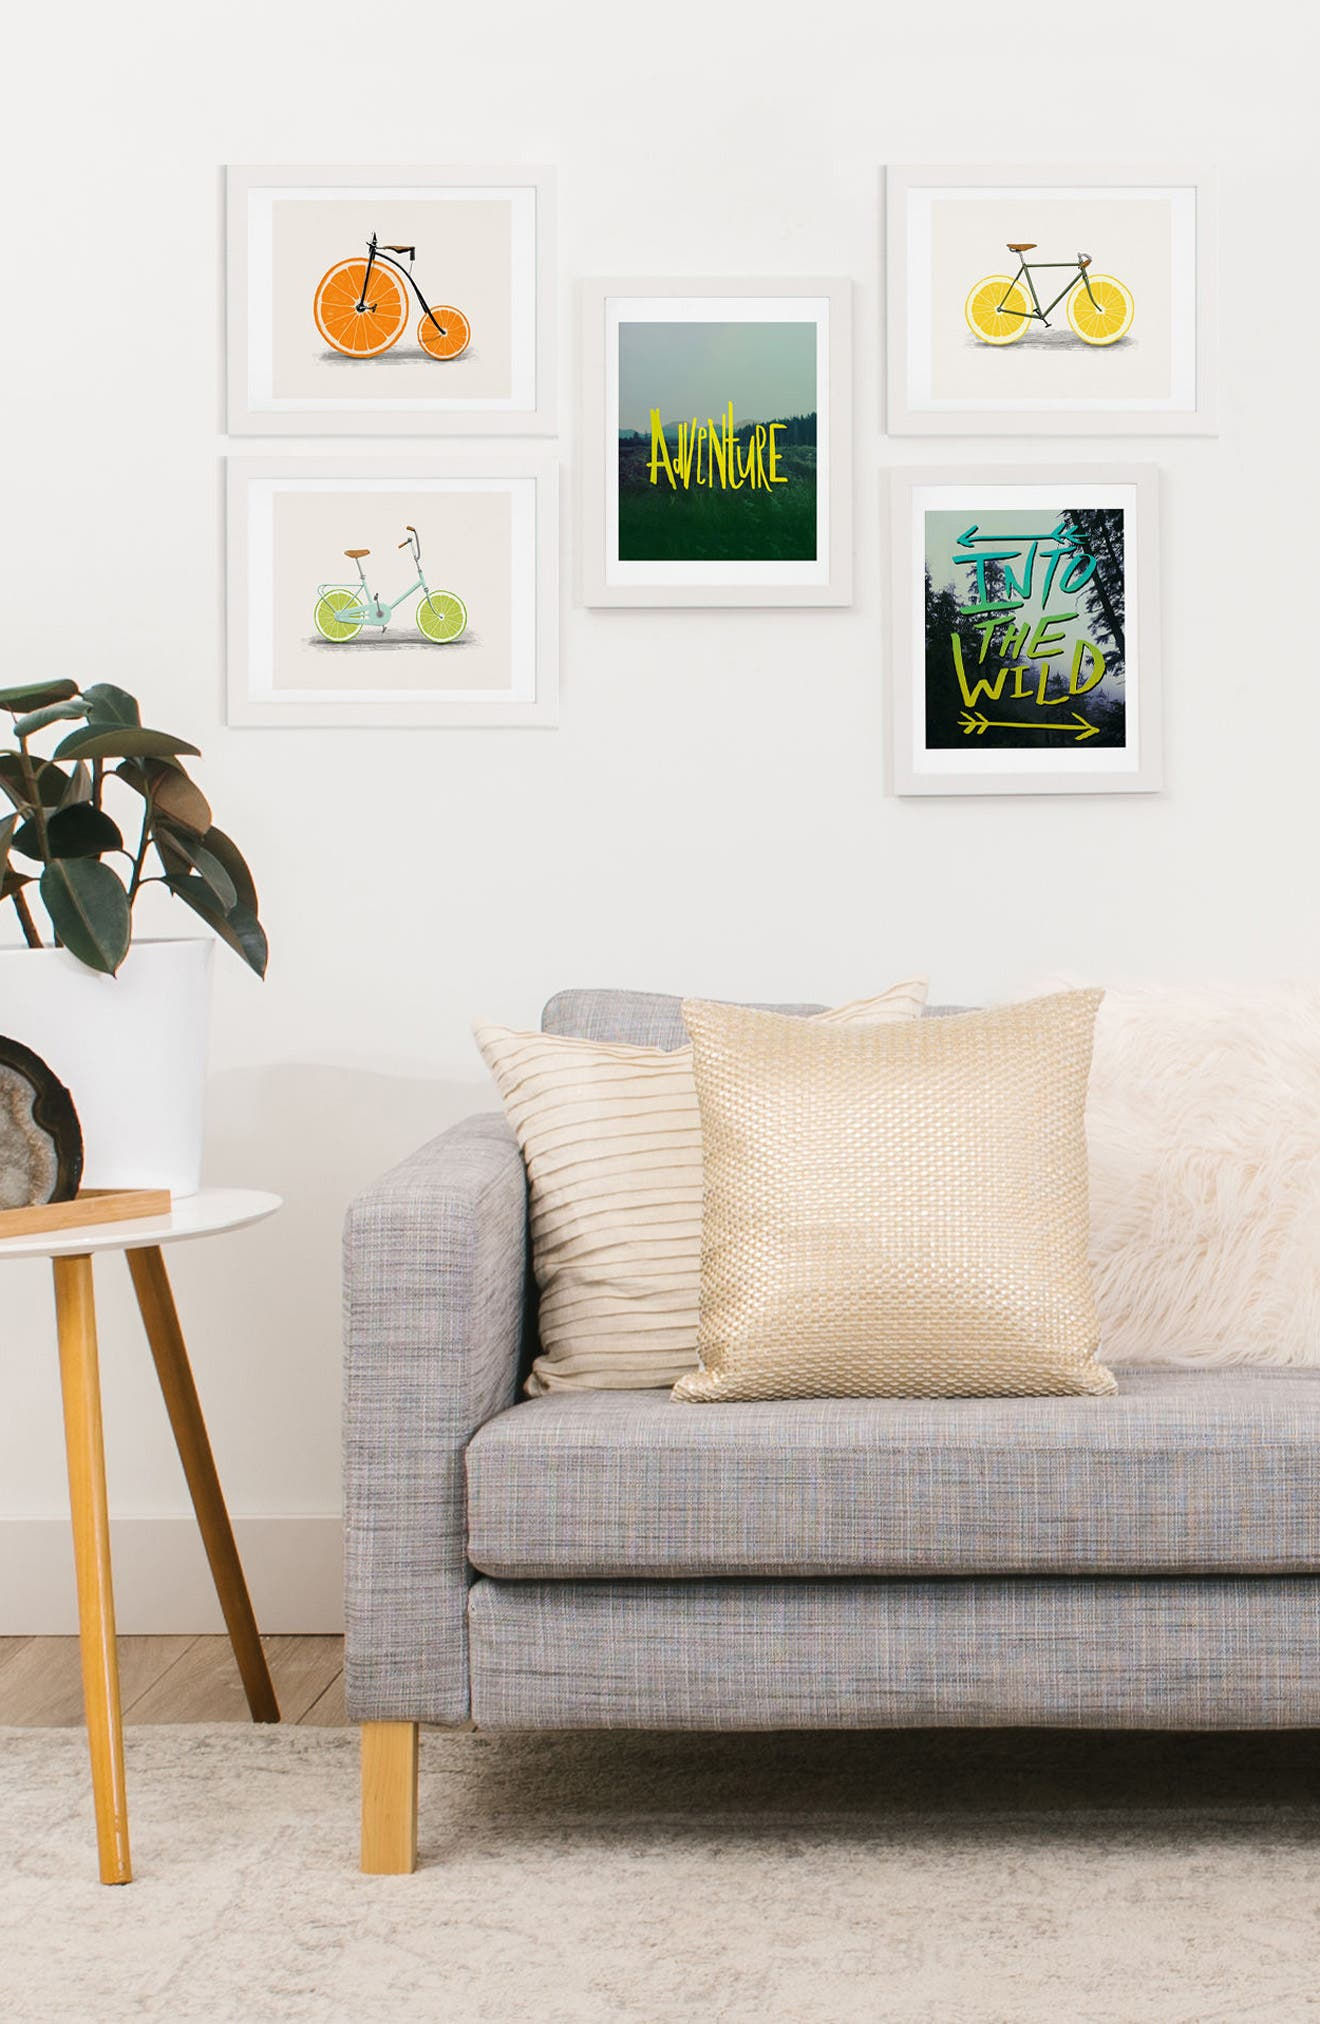 Adventure Five-Piece Gallery Art Print Set,                             Alternate thumbnail 2, color,                             YELLOW AND LIME